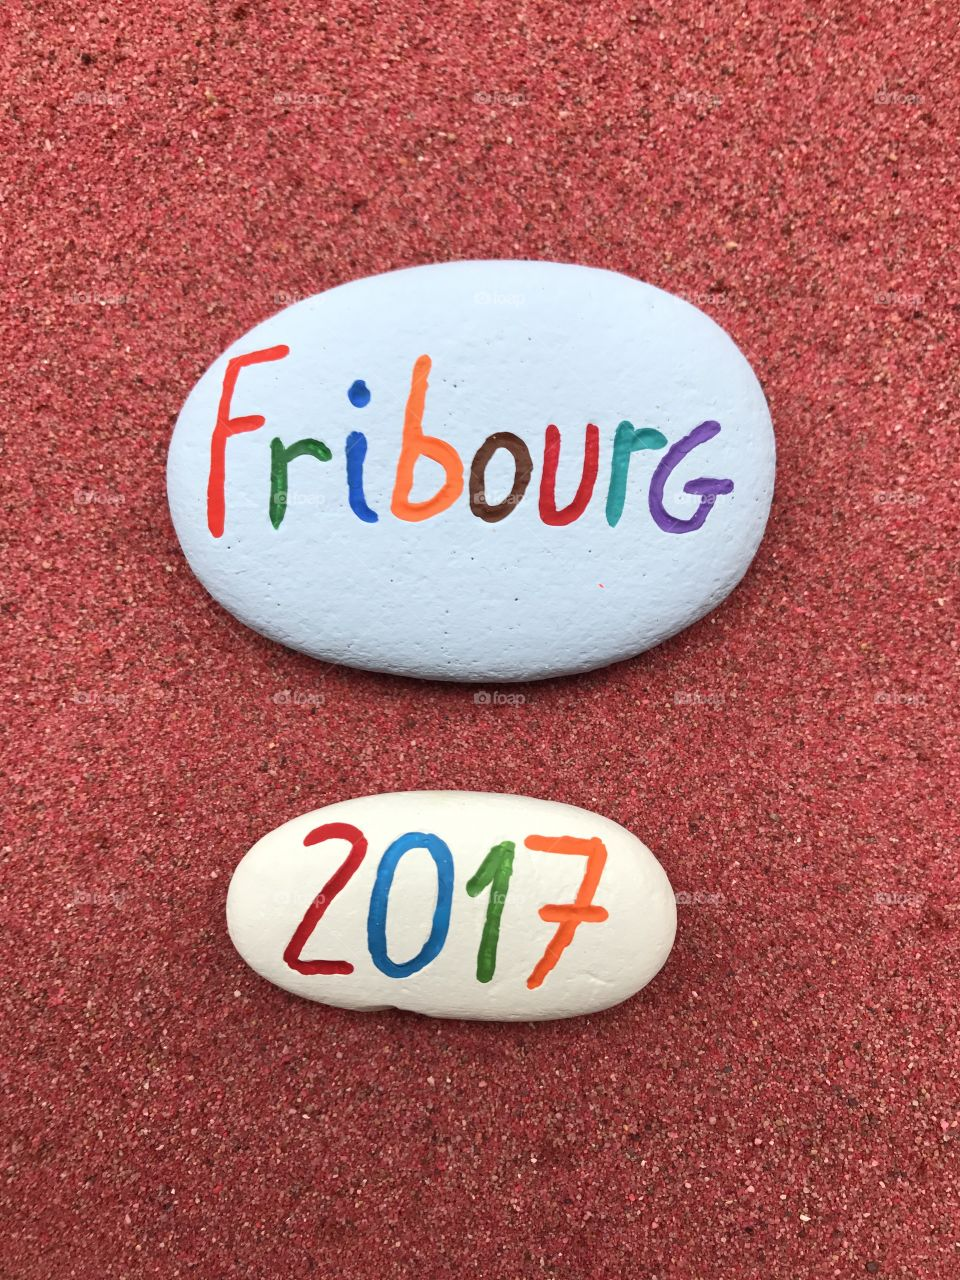 Fribourg 2017, souvenir on painted stones over red sand